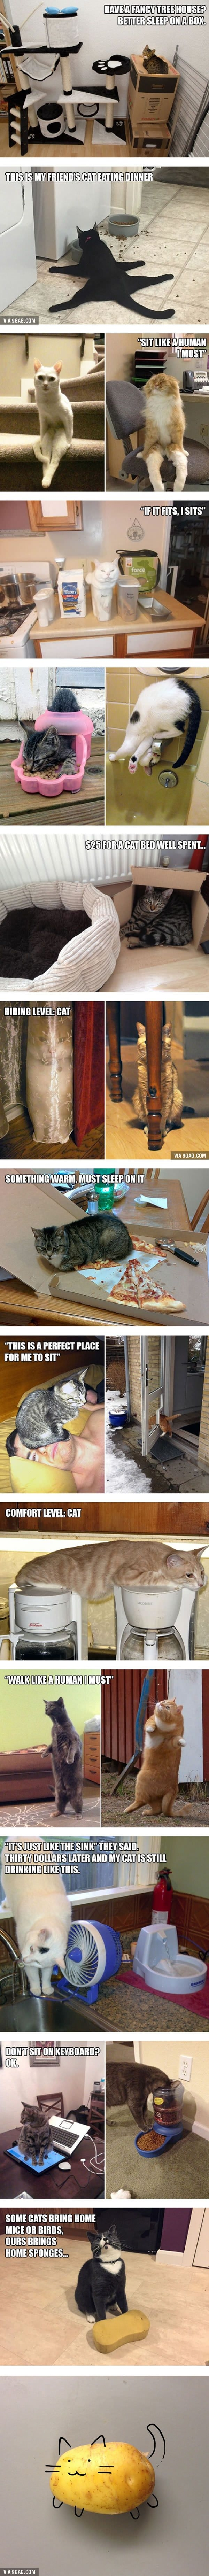 20 Funny Examples of Cat Logic - 9GAG by diane.smith